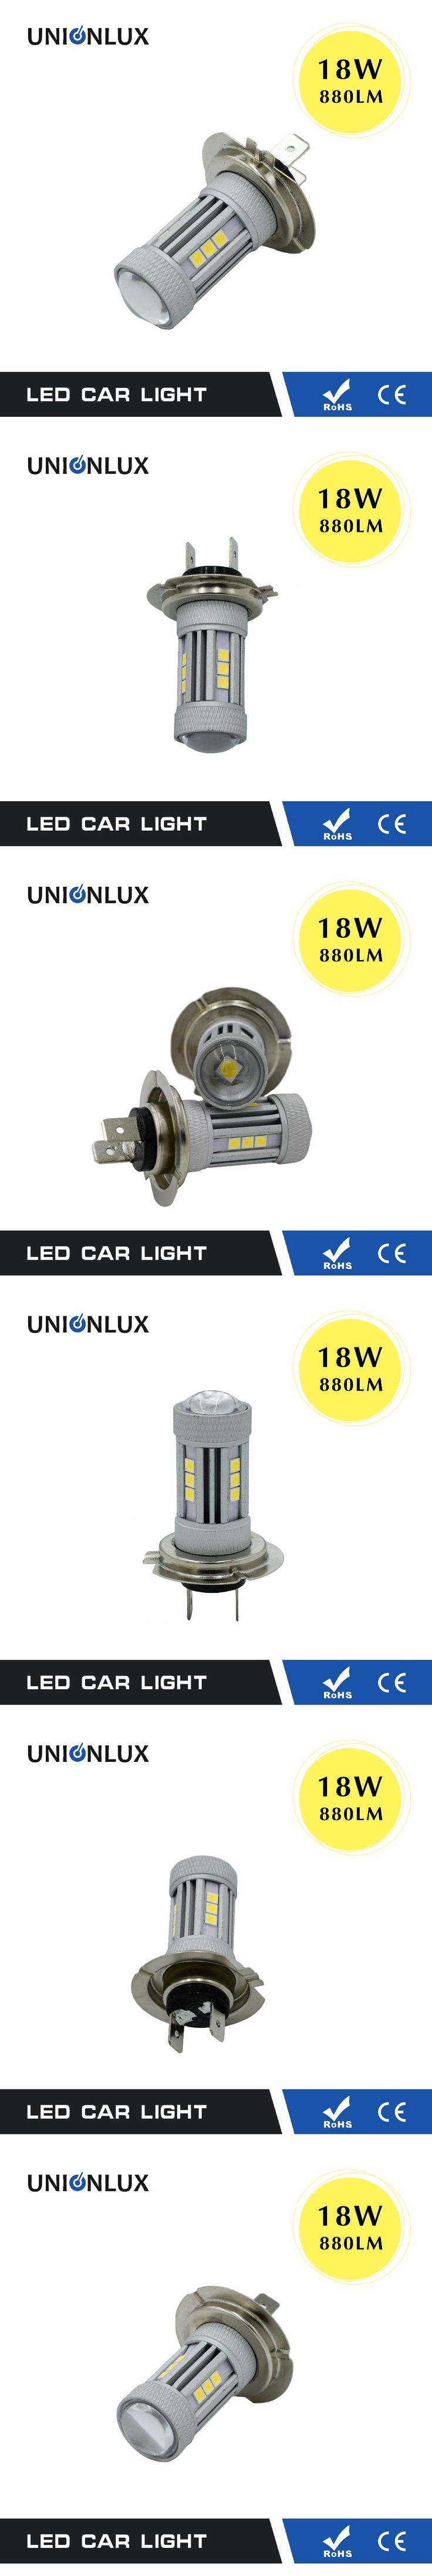 1 PCS LED Auto Bulb 18W W21W H7 H8 H9 H10 H11 P21/5W HB3 HB4 9005 9006 Fog Lamp 880LM Replacement 12V LED Lights